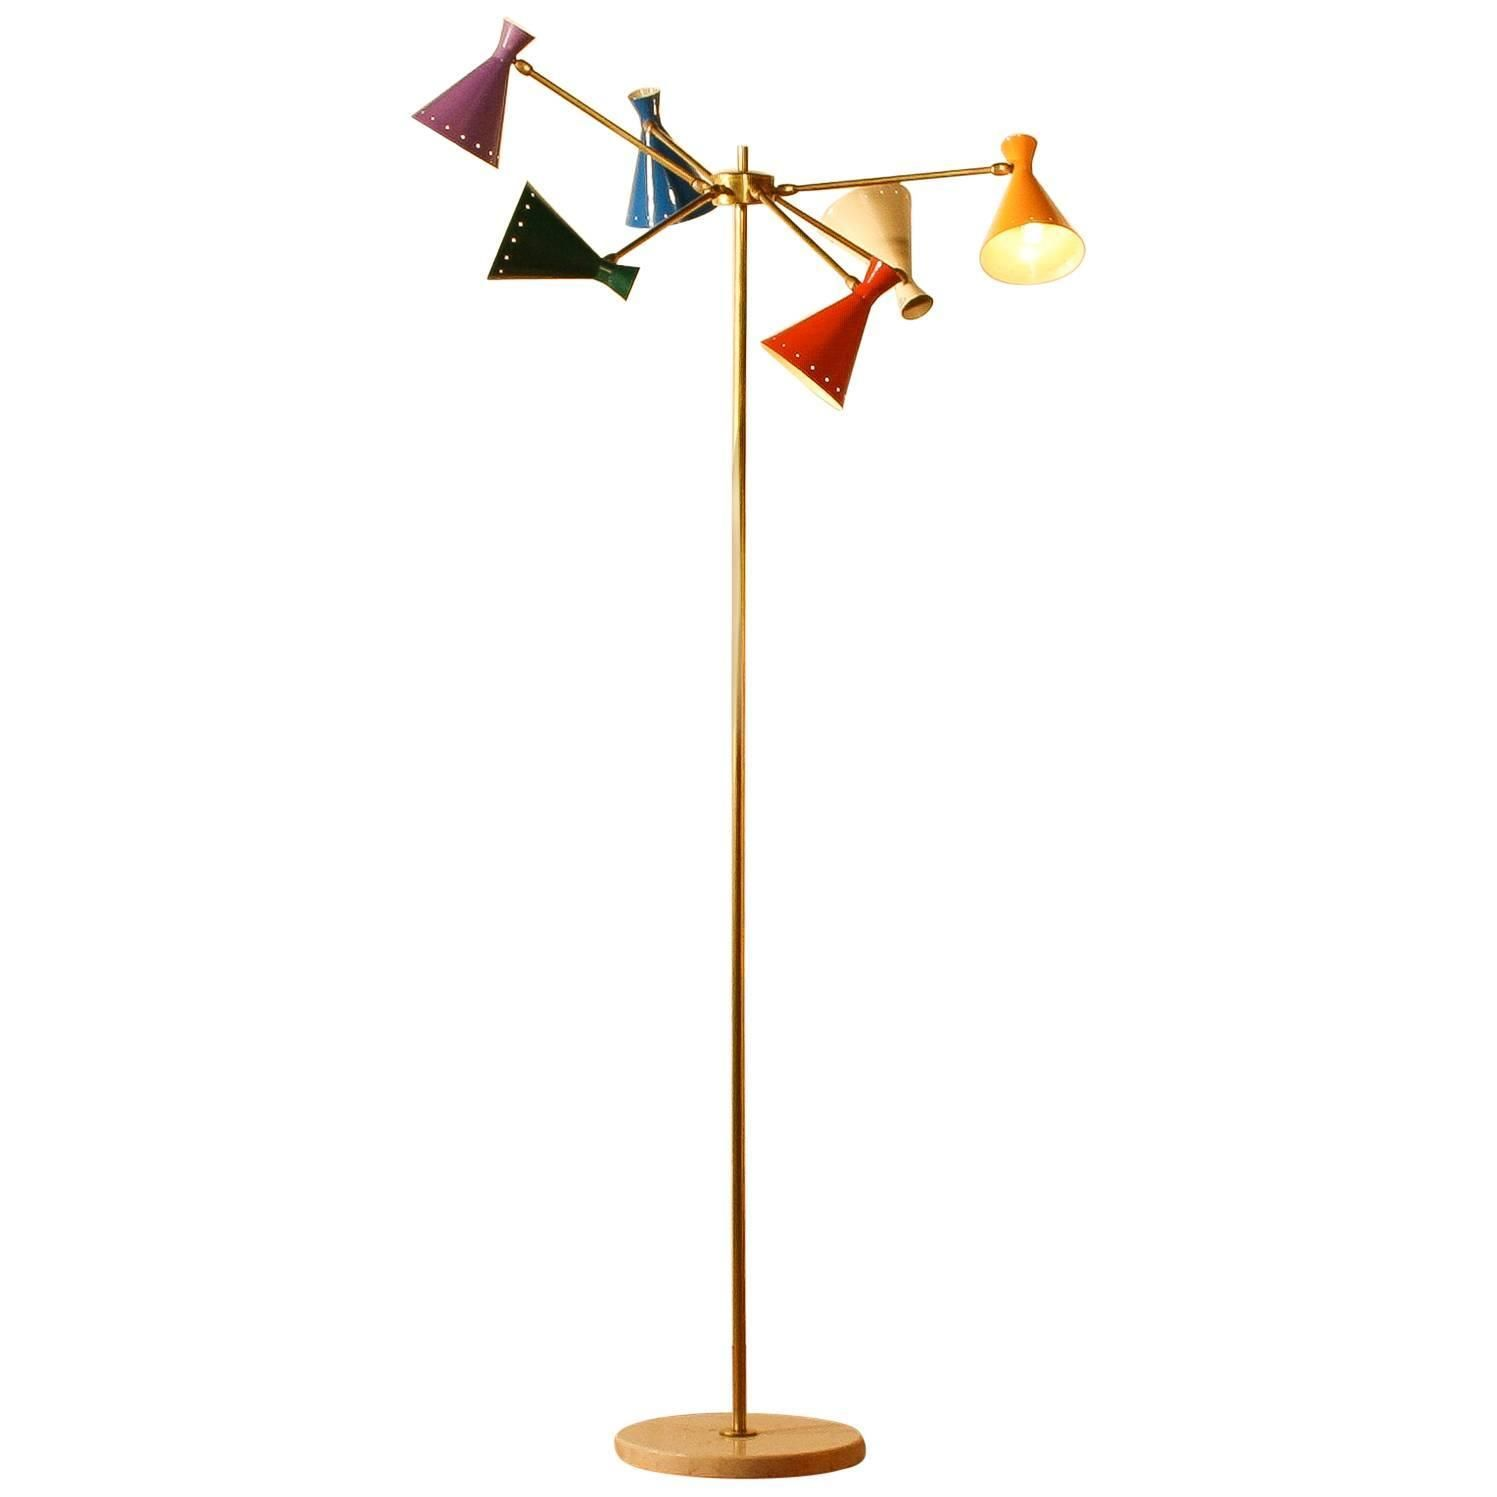 1950s Beautiful Multi Coloured Floorlamp By Arteluce Italy Beautiful Floor Lamps Floor Lamp Lighting Inspiration